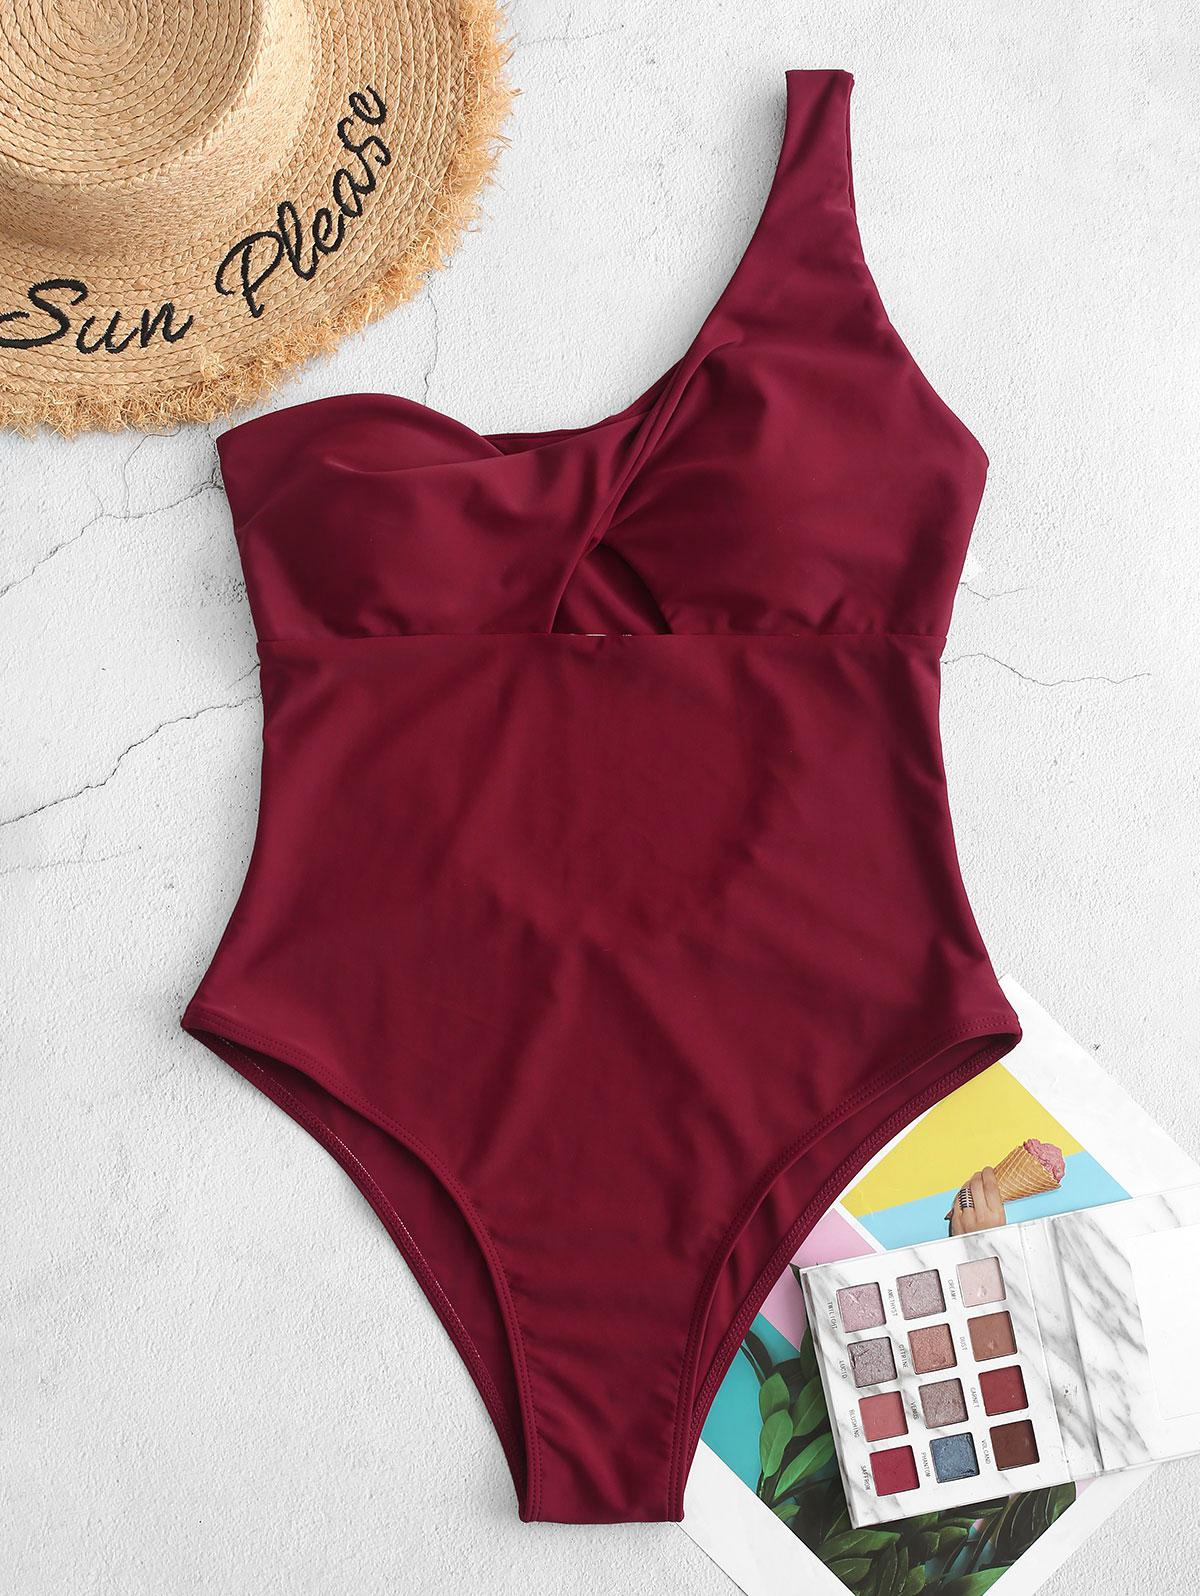 ZAFUL Twisted One Shoulder Cut Out One-piece Swimsuit фото